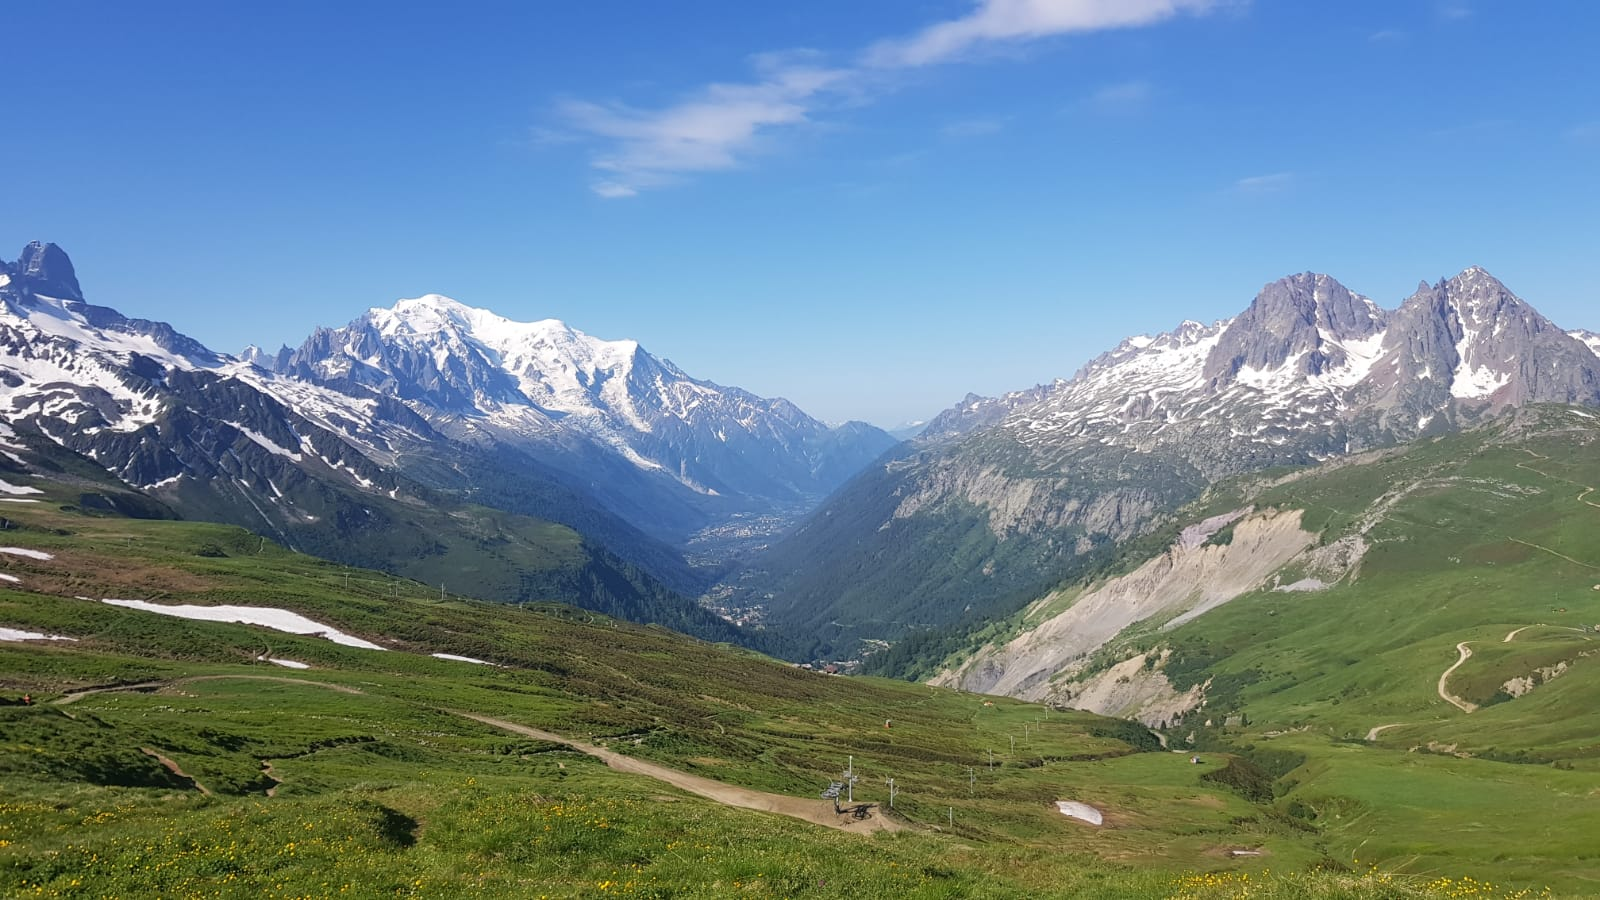 The French section of the Haute Route trail is now clear of snow.